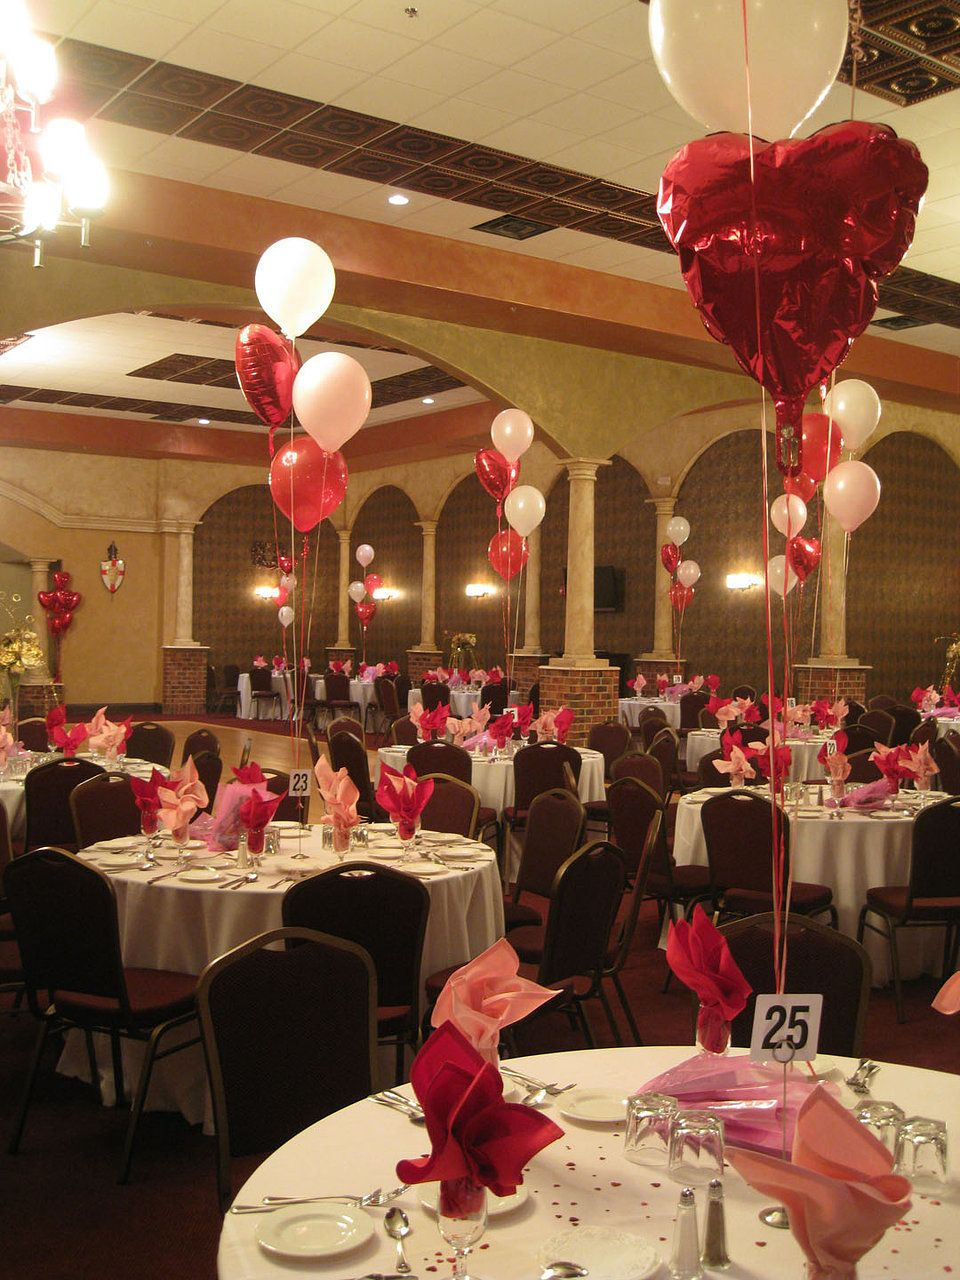 Valentines Day Decorations Royal Hall Banquet Hall and Royals